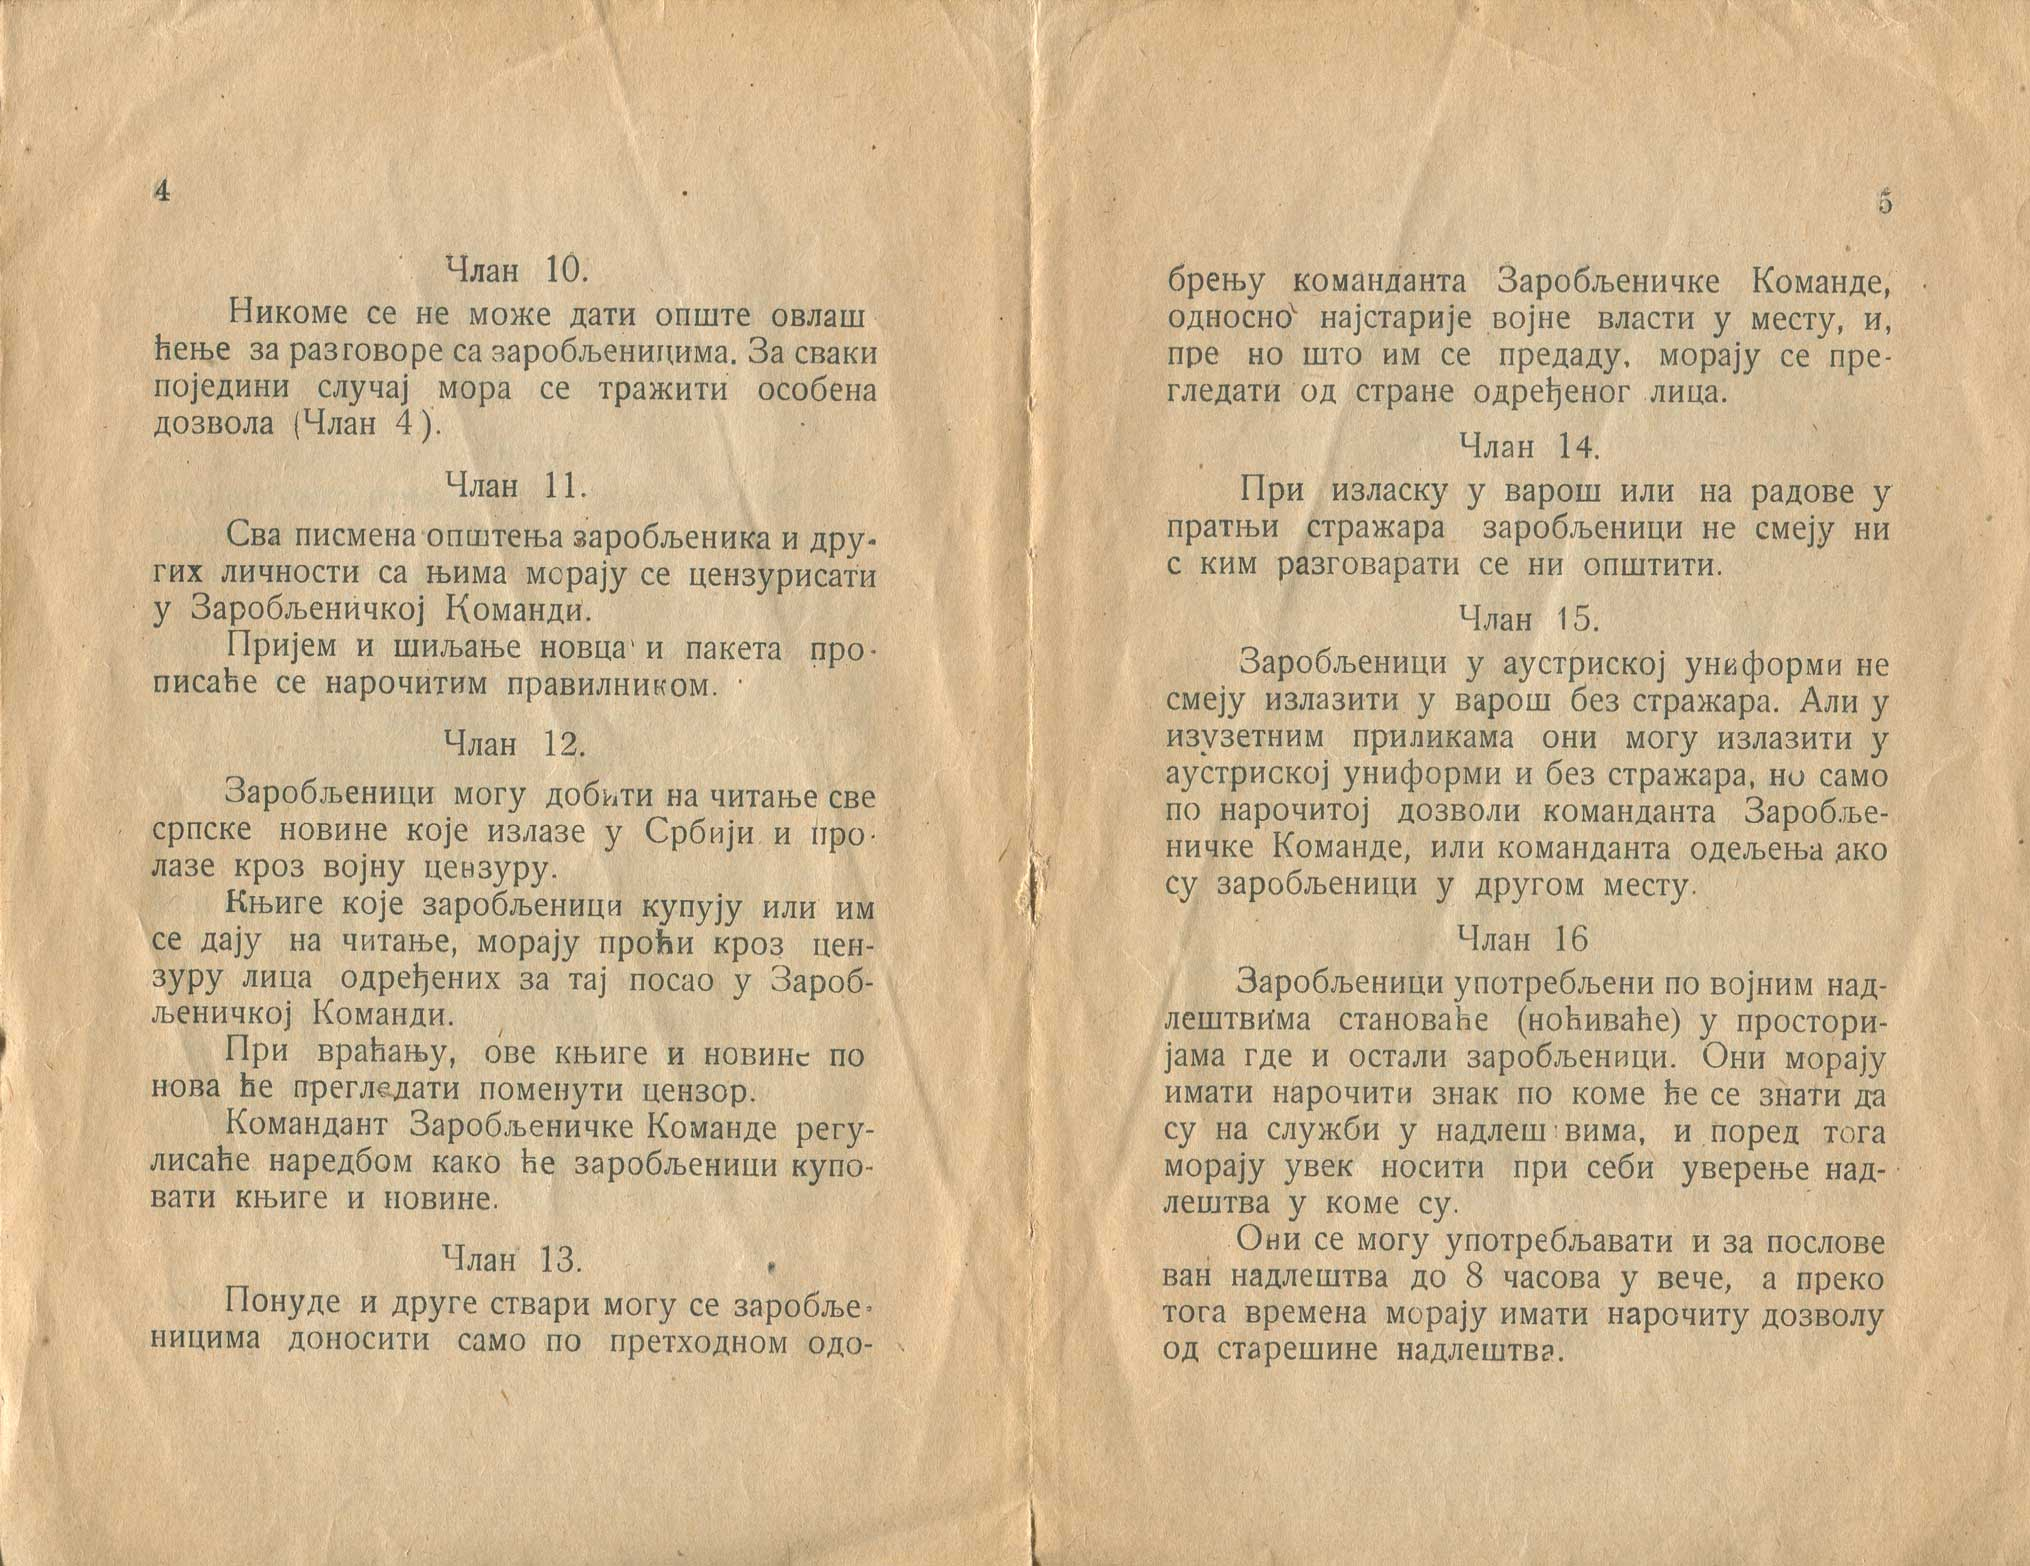 Serbian publication detailing the rules for the treatment of Austrian prisoners of war, 1914.